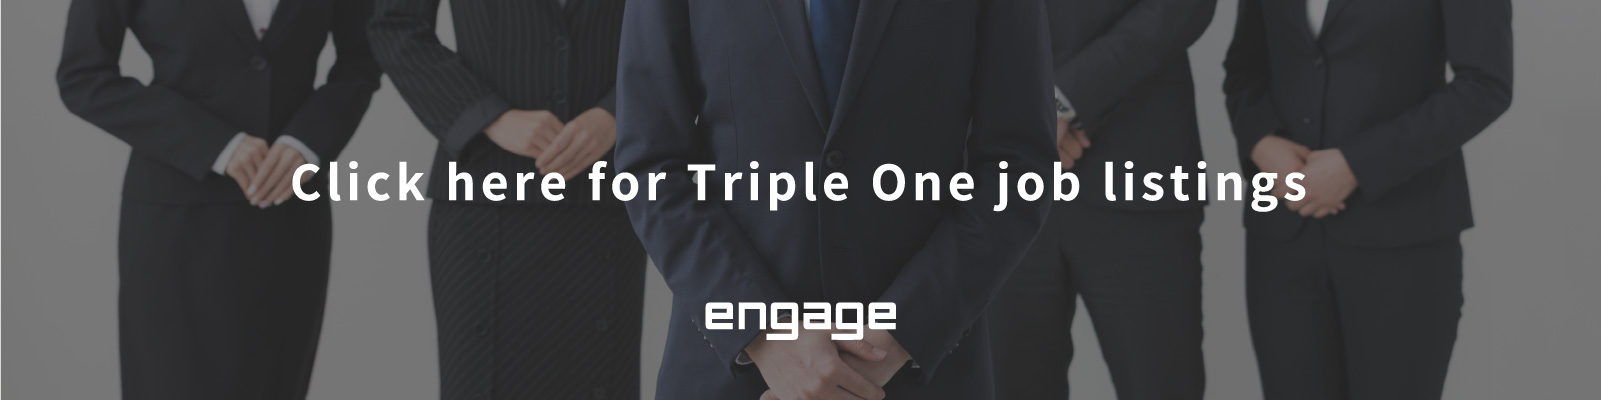 Click here for Triple One job listings